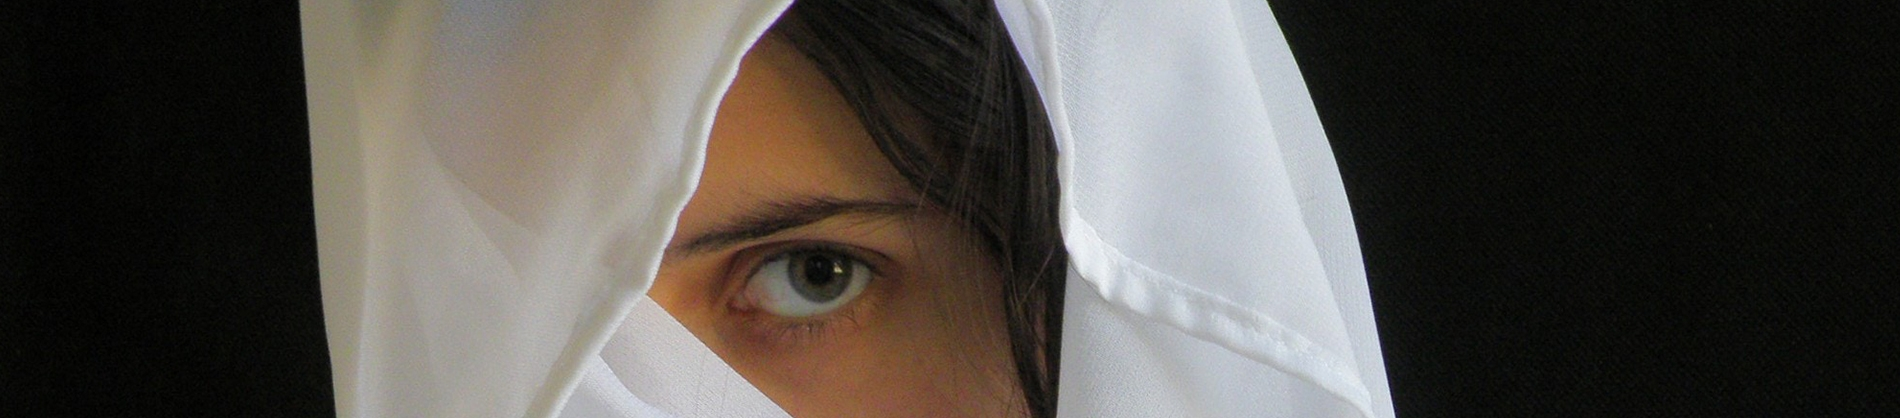 A women with white veil over her head